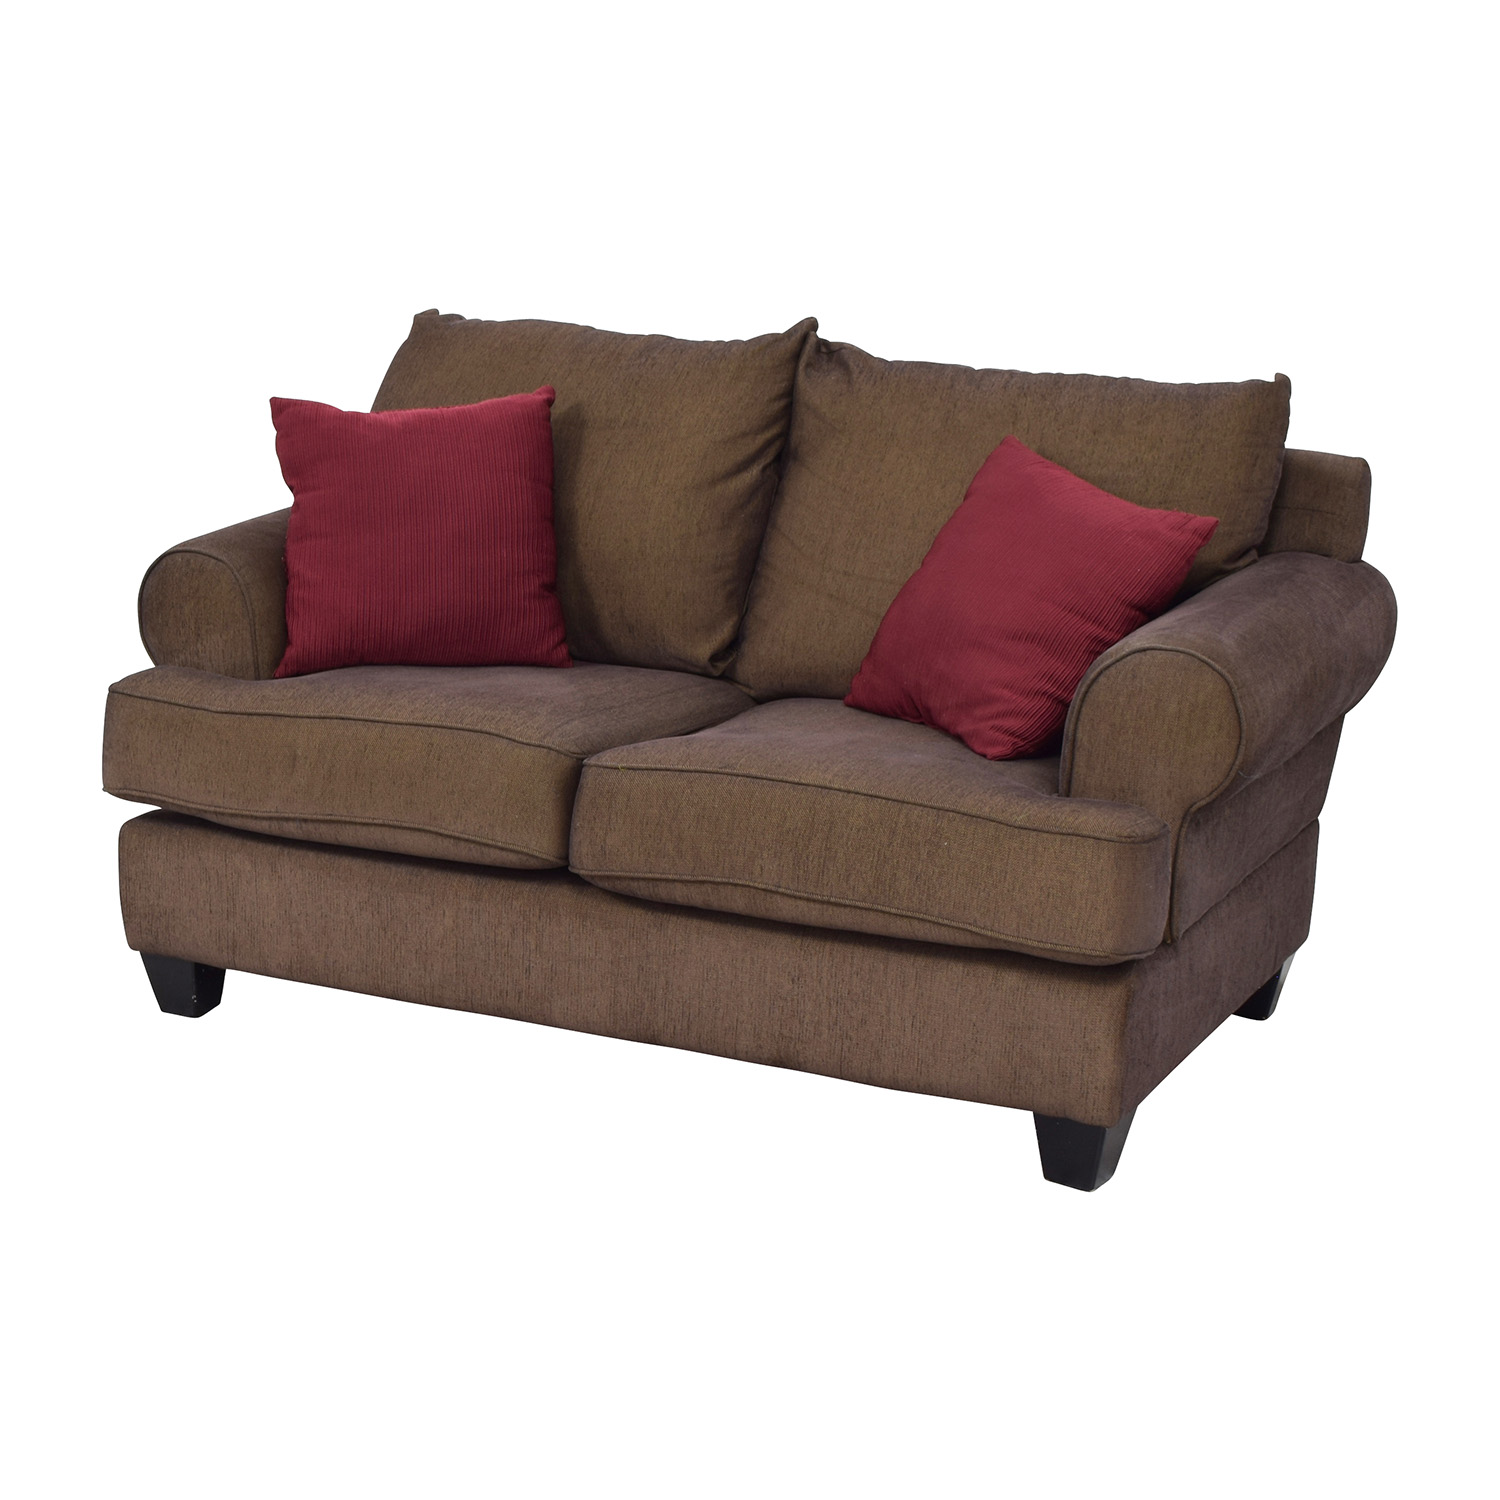 76 Off Brown Two Seat Loveseat With Toss Pillows Sofas